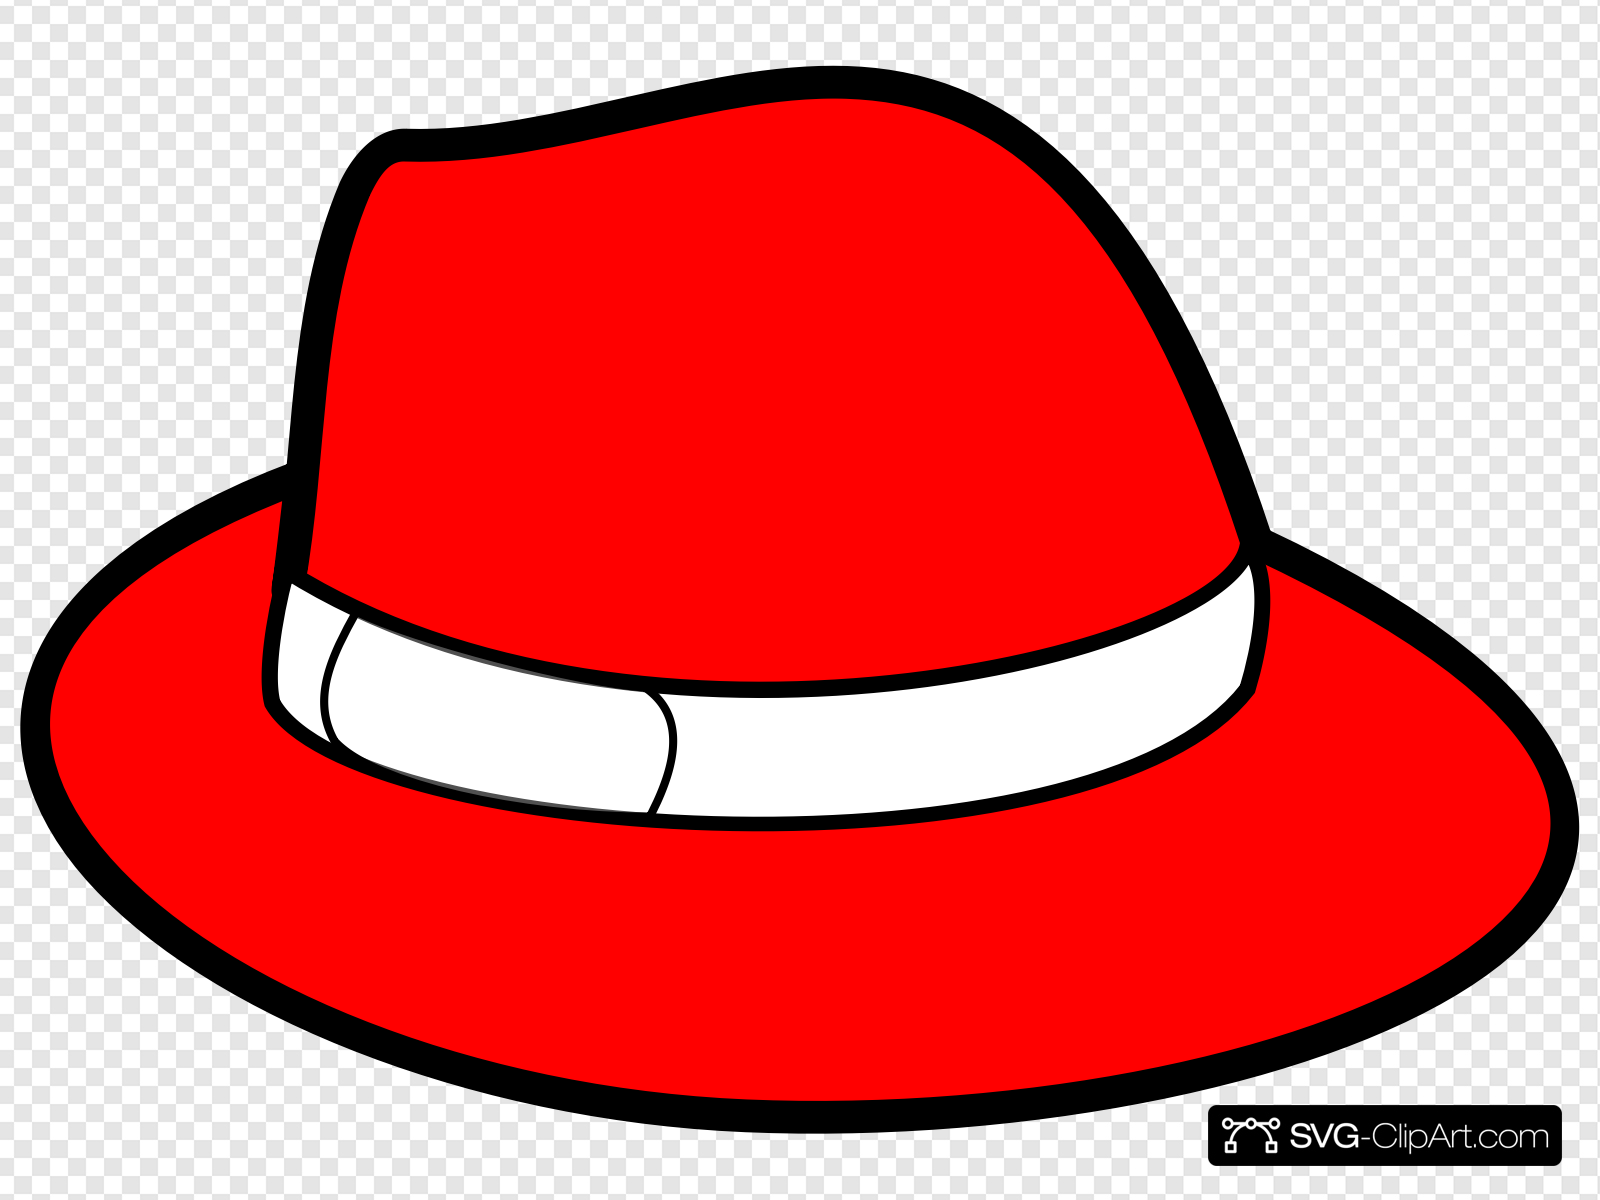 Red Hat Clip art, Icon and SVG.